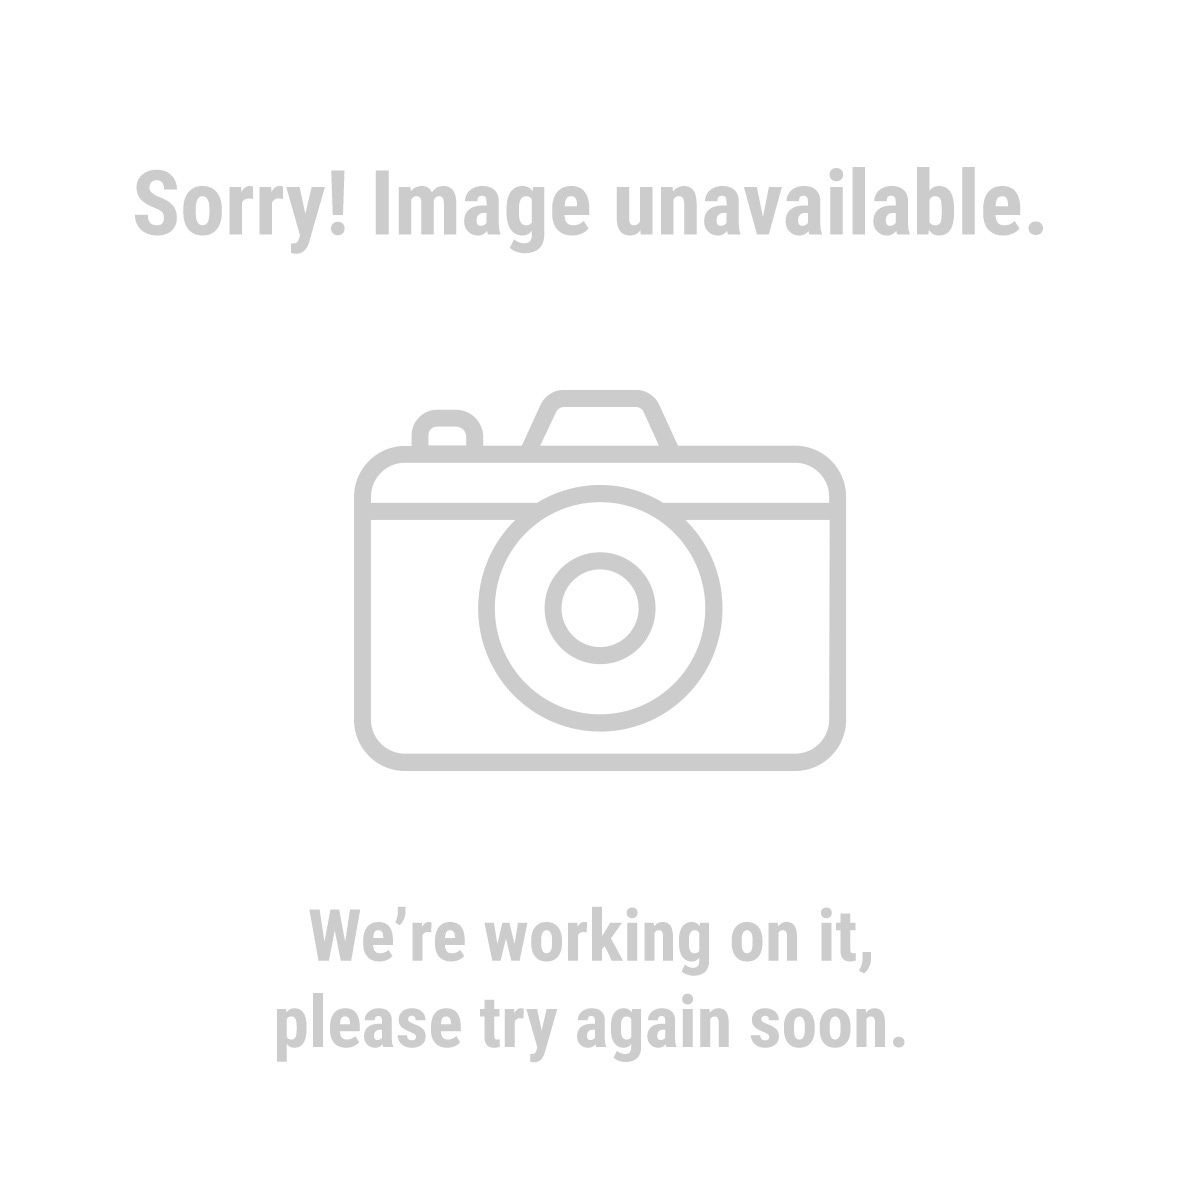 acc21c218eb 20 Pc 3 8 in. Drive Metric Socket Set